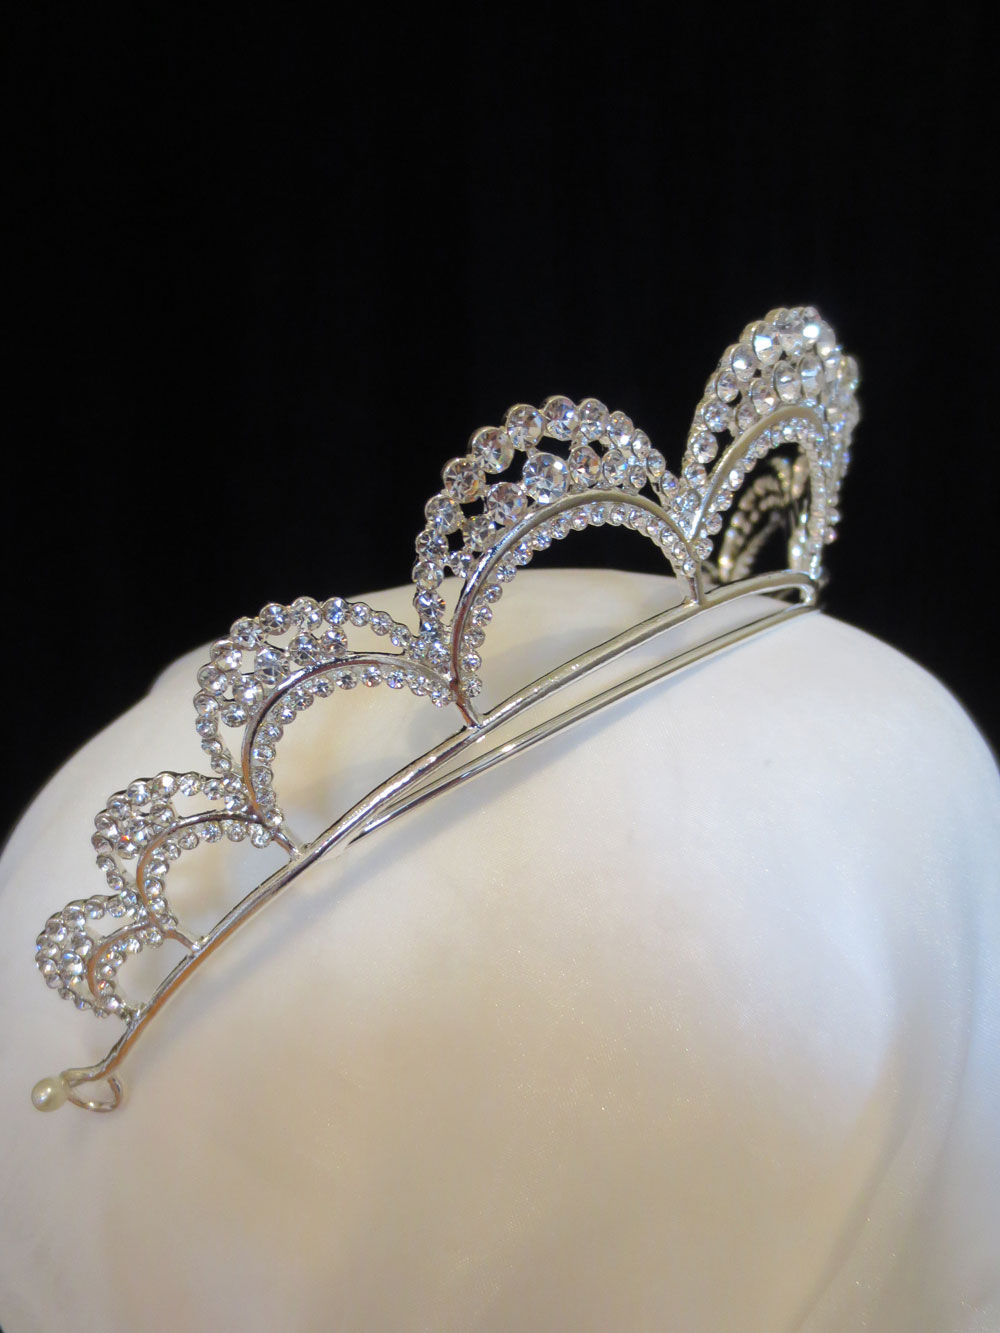 John-Zimmerman-Couture-Headpieces-and-Tiaras-Model-Opera-Gallery-Image-2